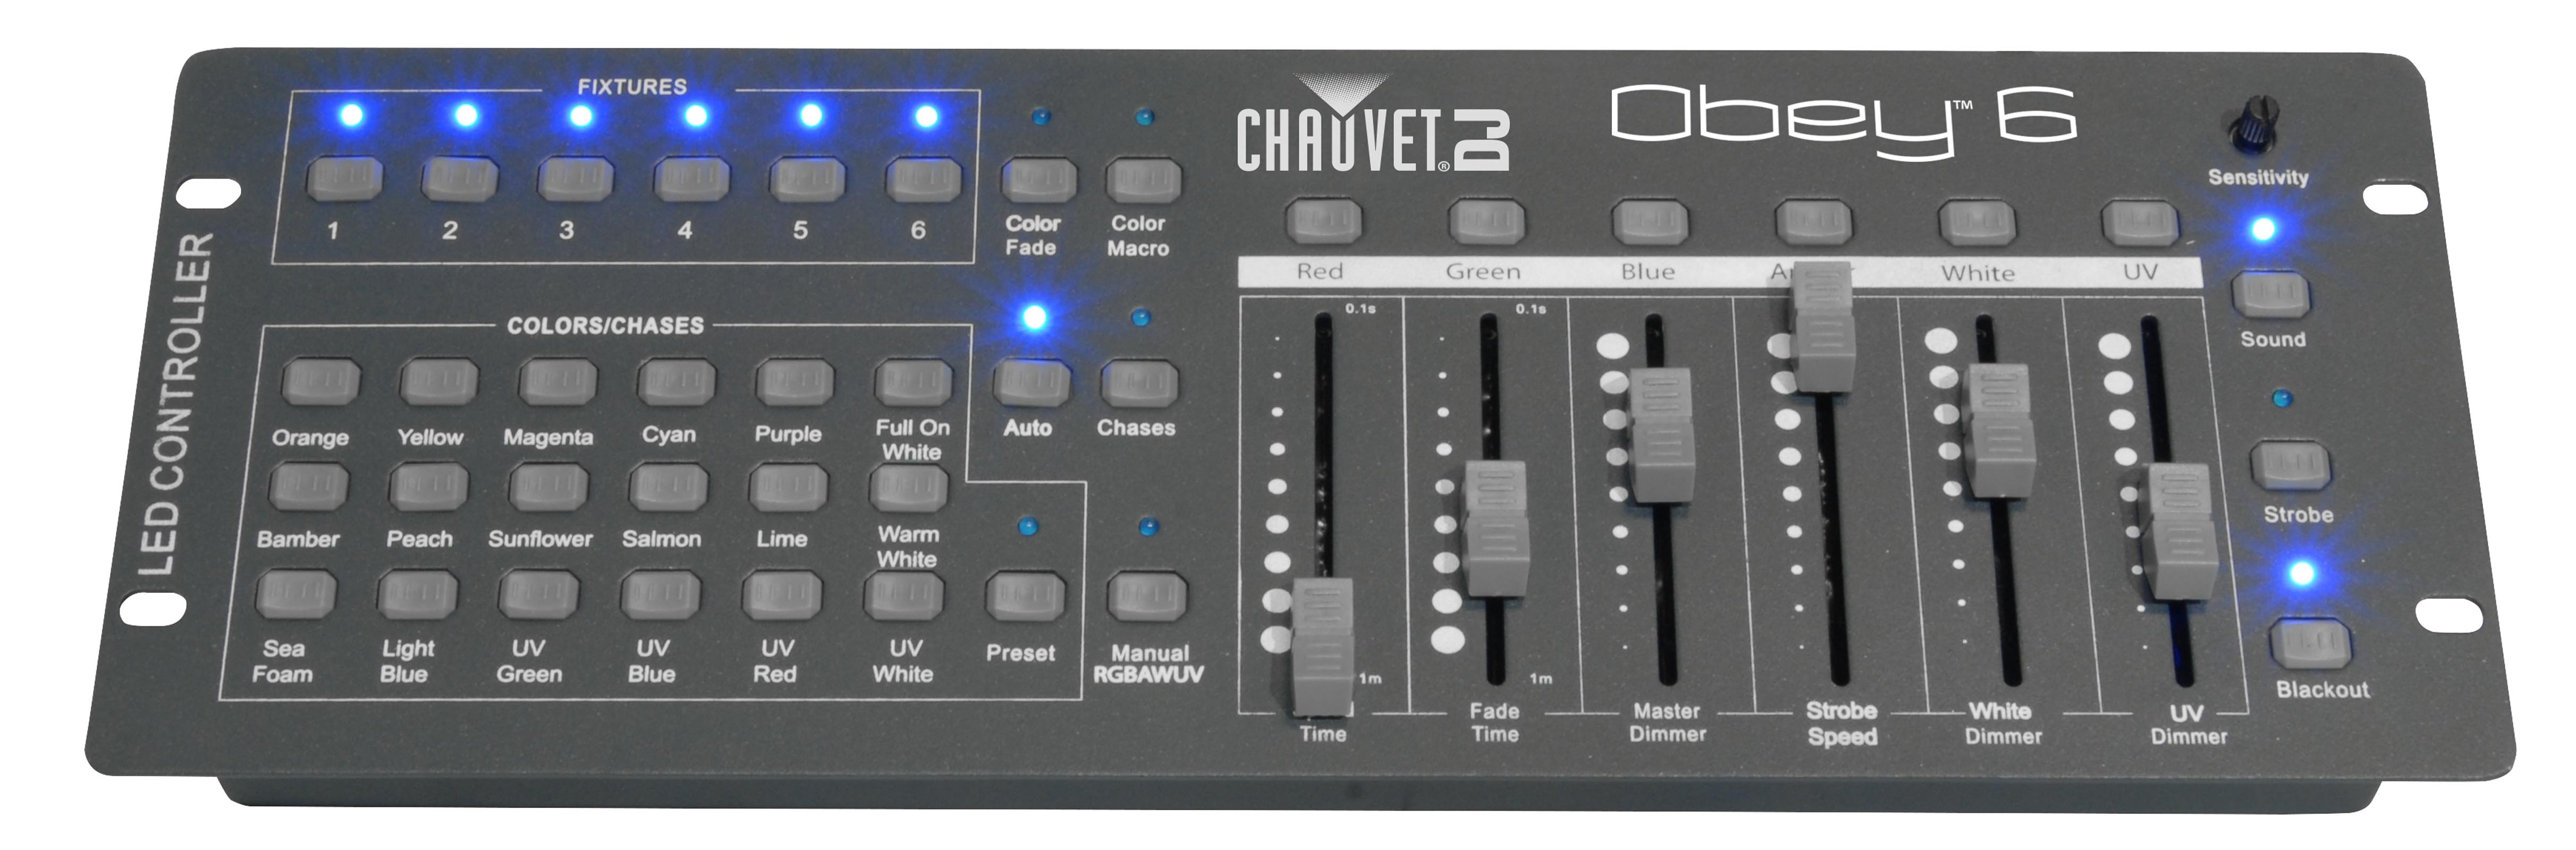 Click here to buy Chauvet OBEY 6 6-Channel DMX Universal DJ Lighting Controller | Up To 6 Fixtures.